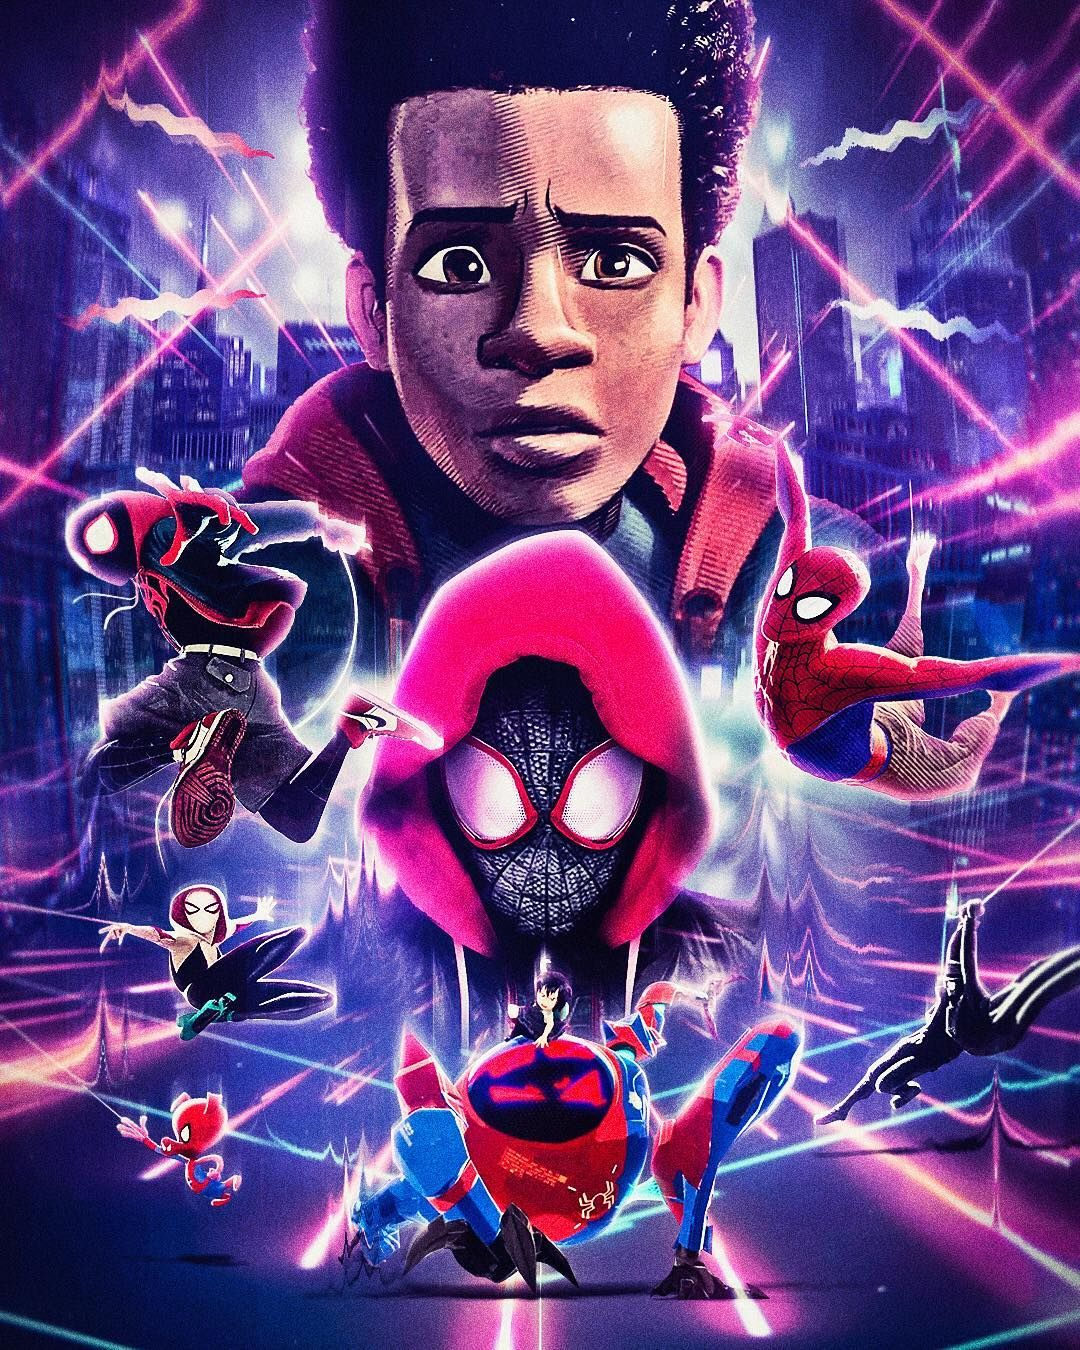 Spider Man Into The Spider Verse Or In Other Words Probably The Best Movie I Have Seen In Years Spiderman Marvel Spiderman Marvel